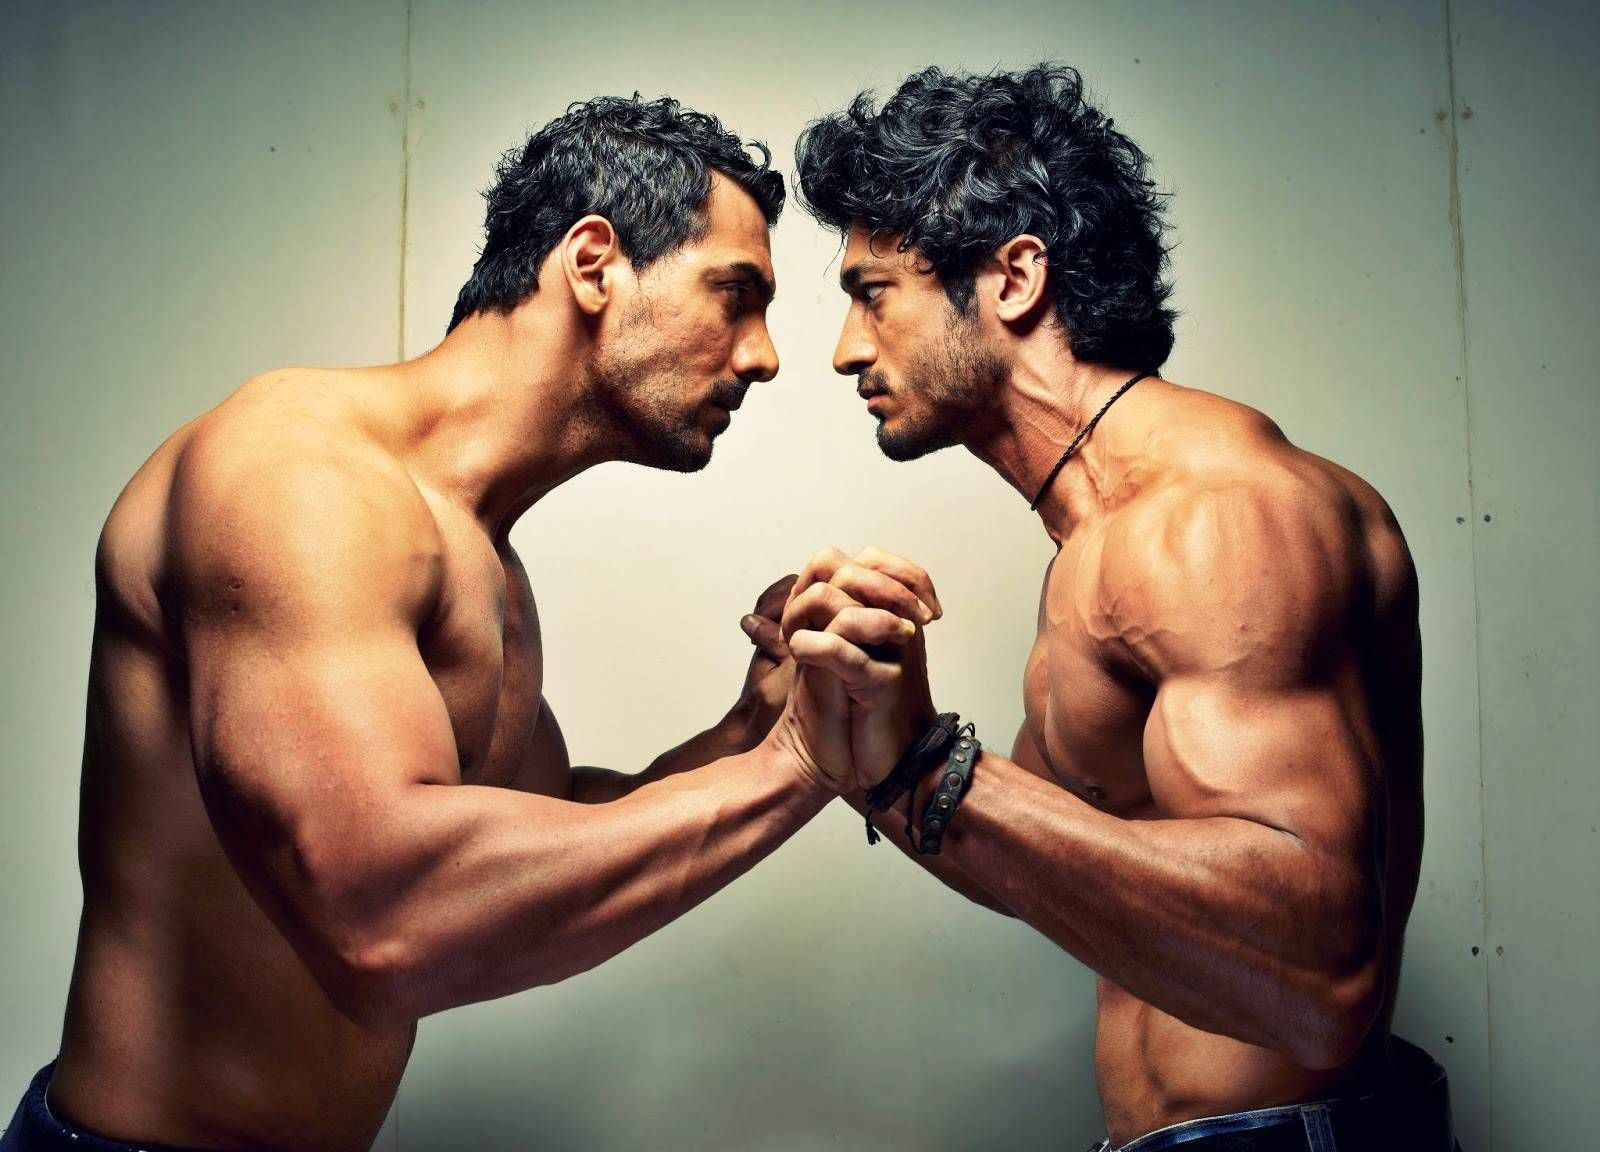 vidyut-jamwal-and-john-abraham-fighting-photos-from-force ...